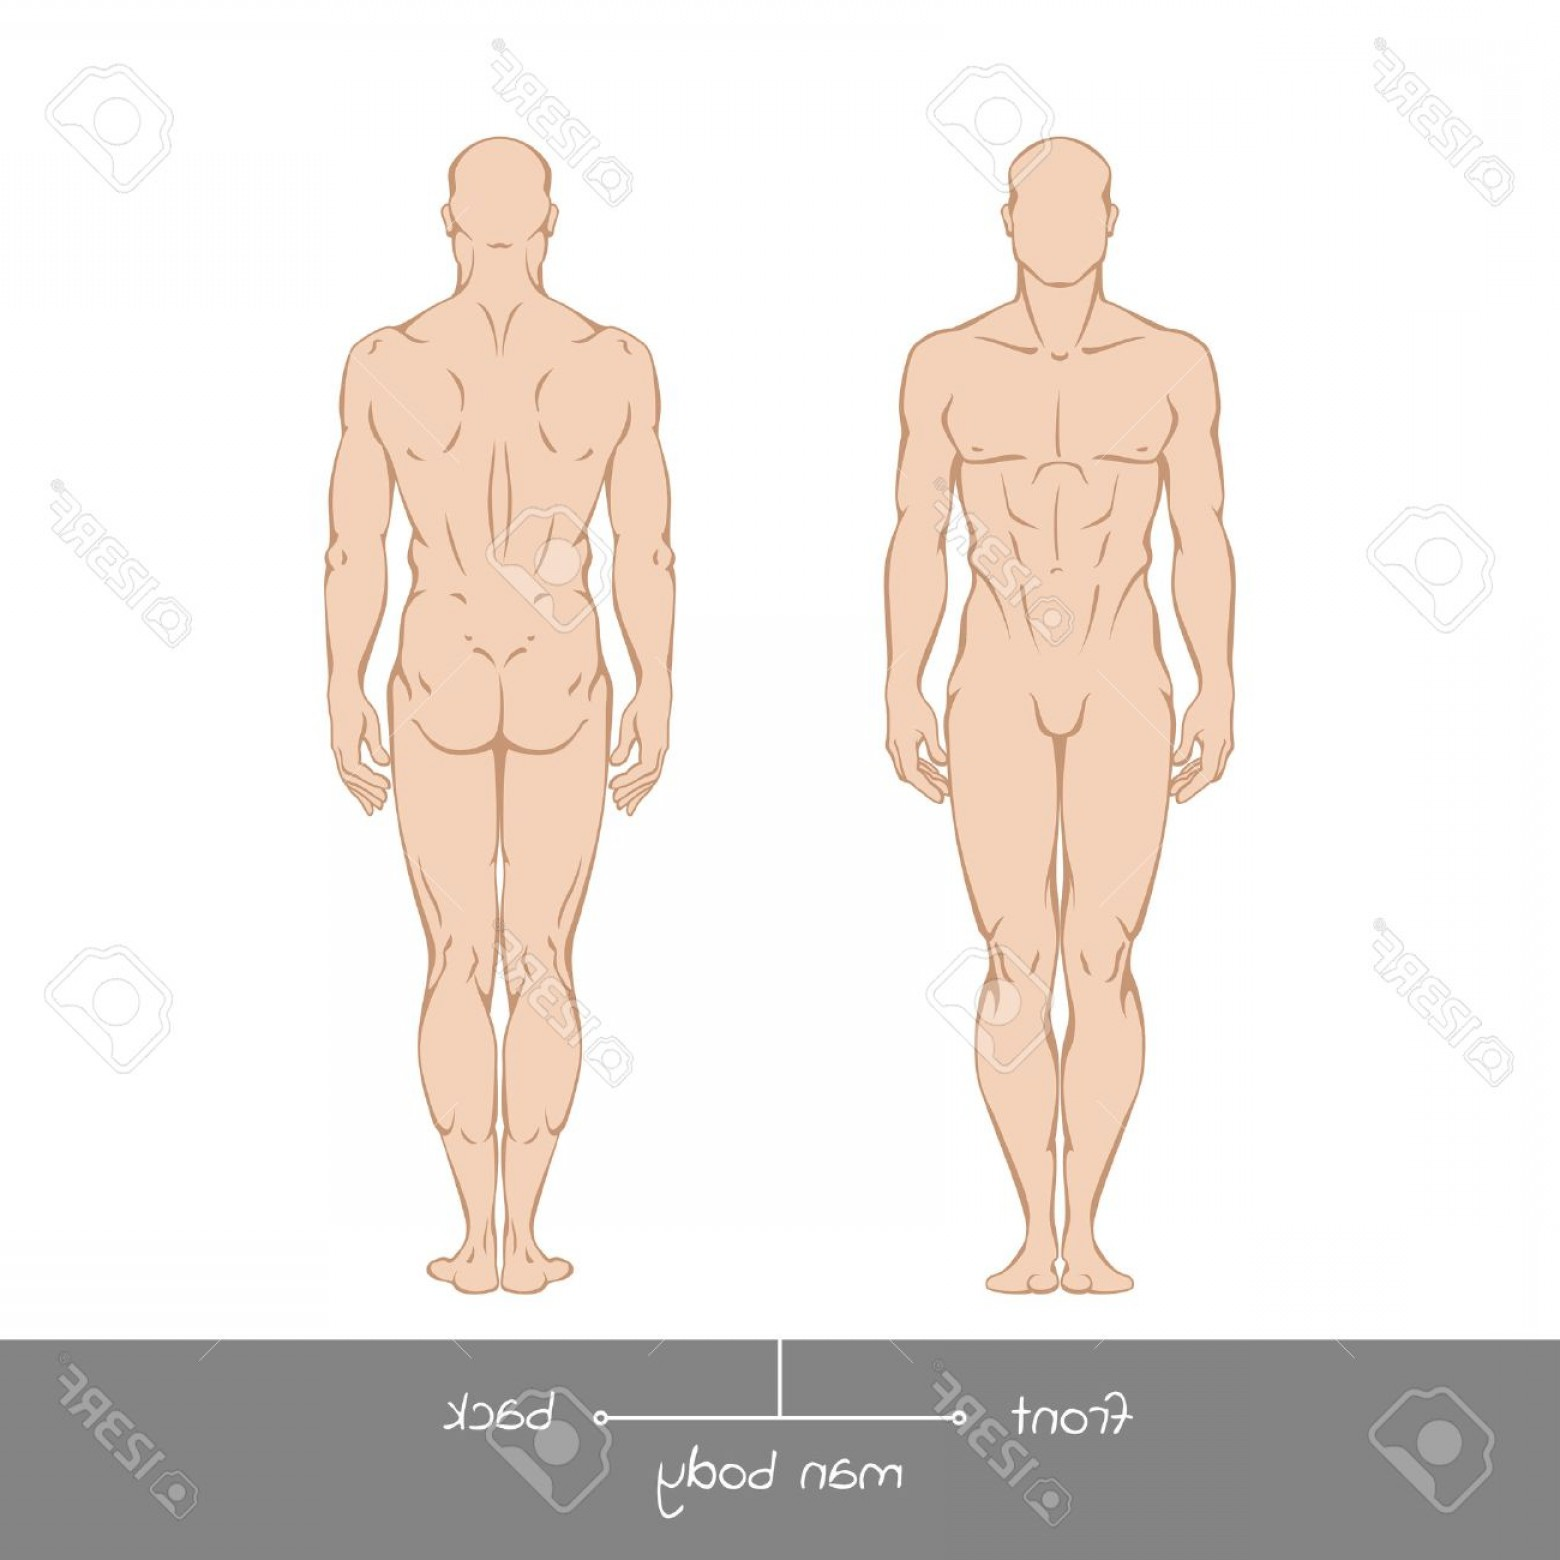 Male Human Vector: Photostock Vector Muscular Young Man From Front And Back View Healthy Male Body Shapes Outline Colored Illustration Wi